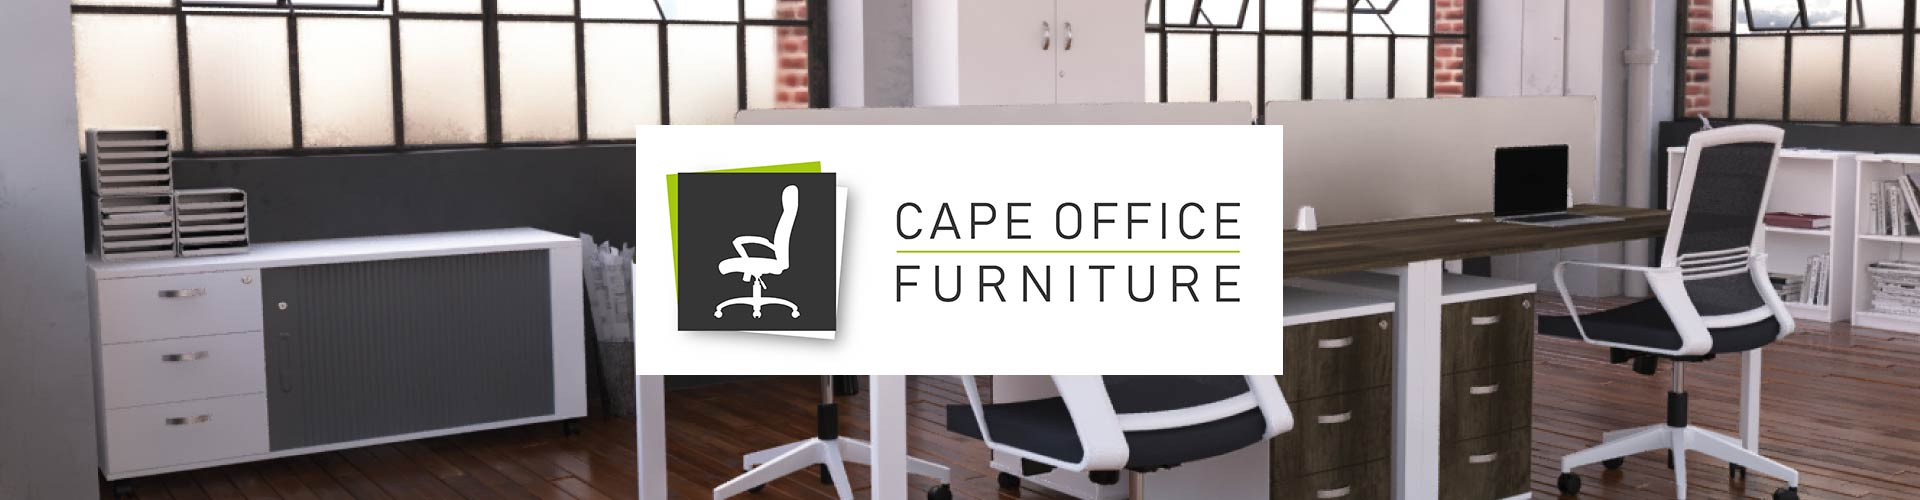 Office Furniture Supplier in Cape Town